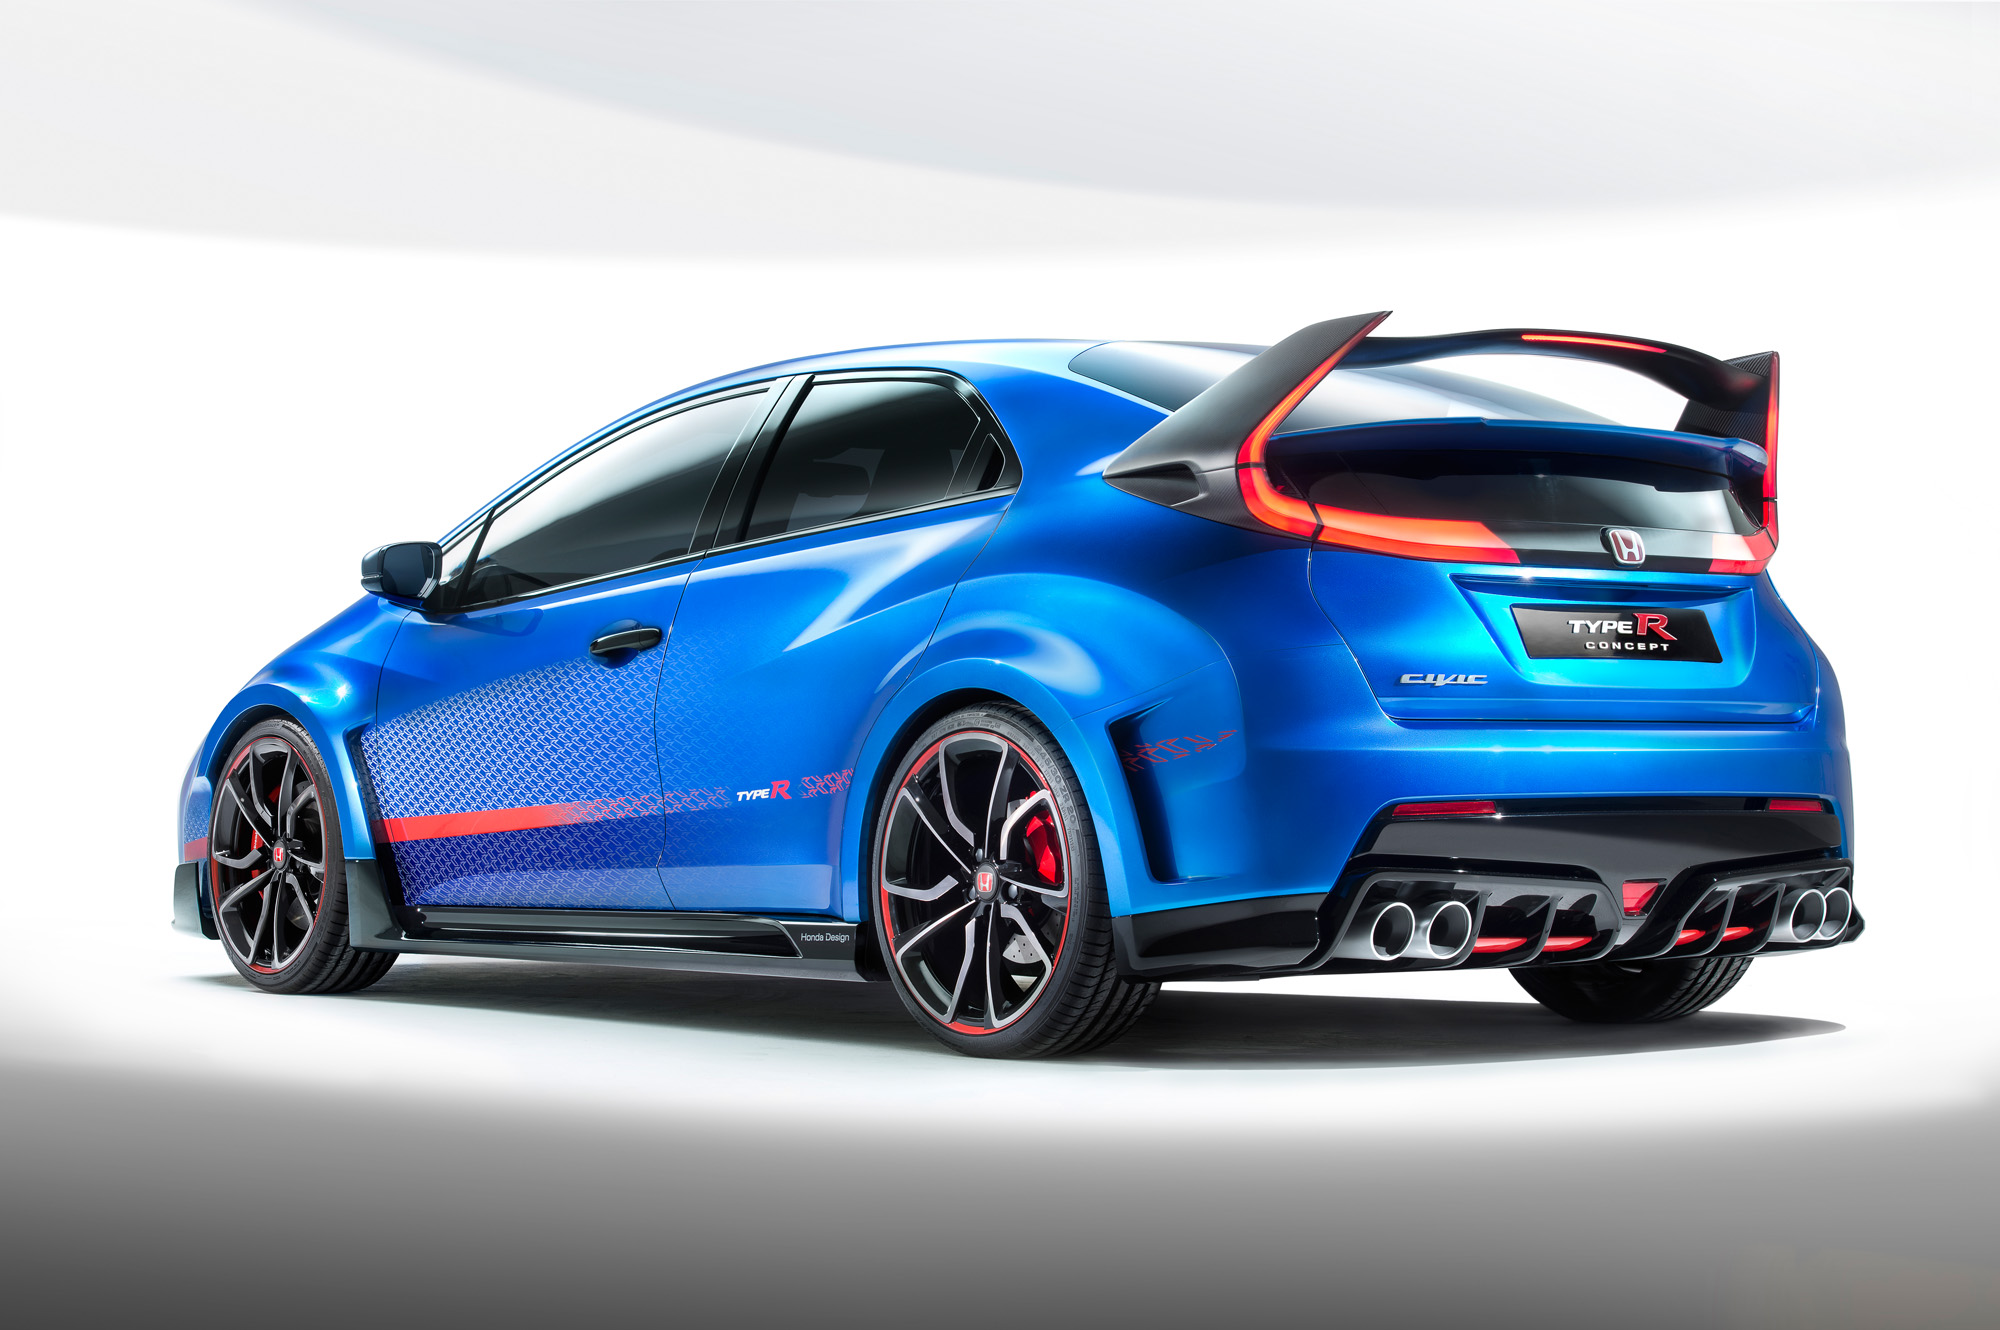 honda civic type r concept knapp 300 ps an der front. Black Bedroom Furniture Sets. Home Design Ideas